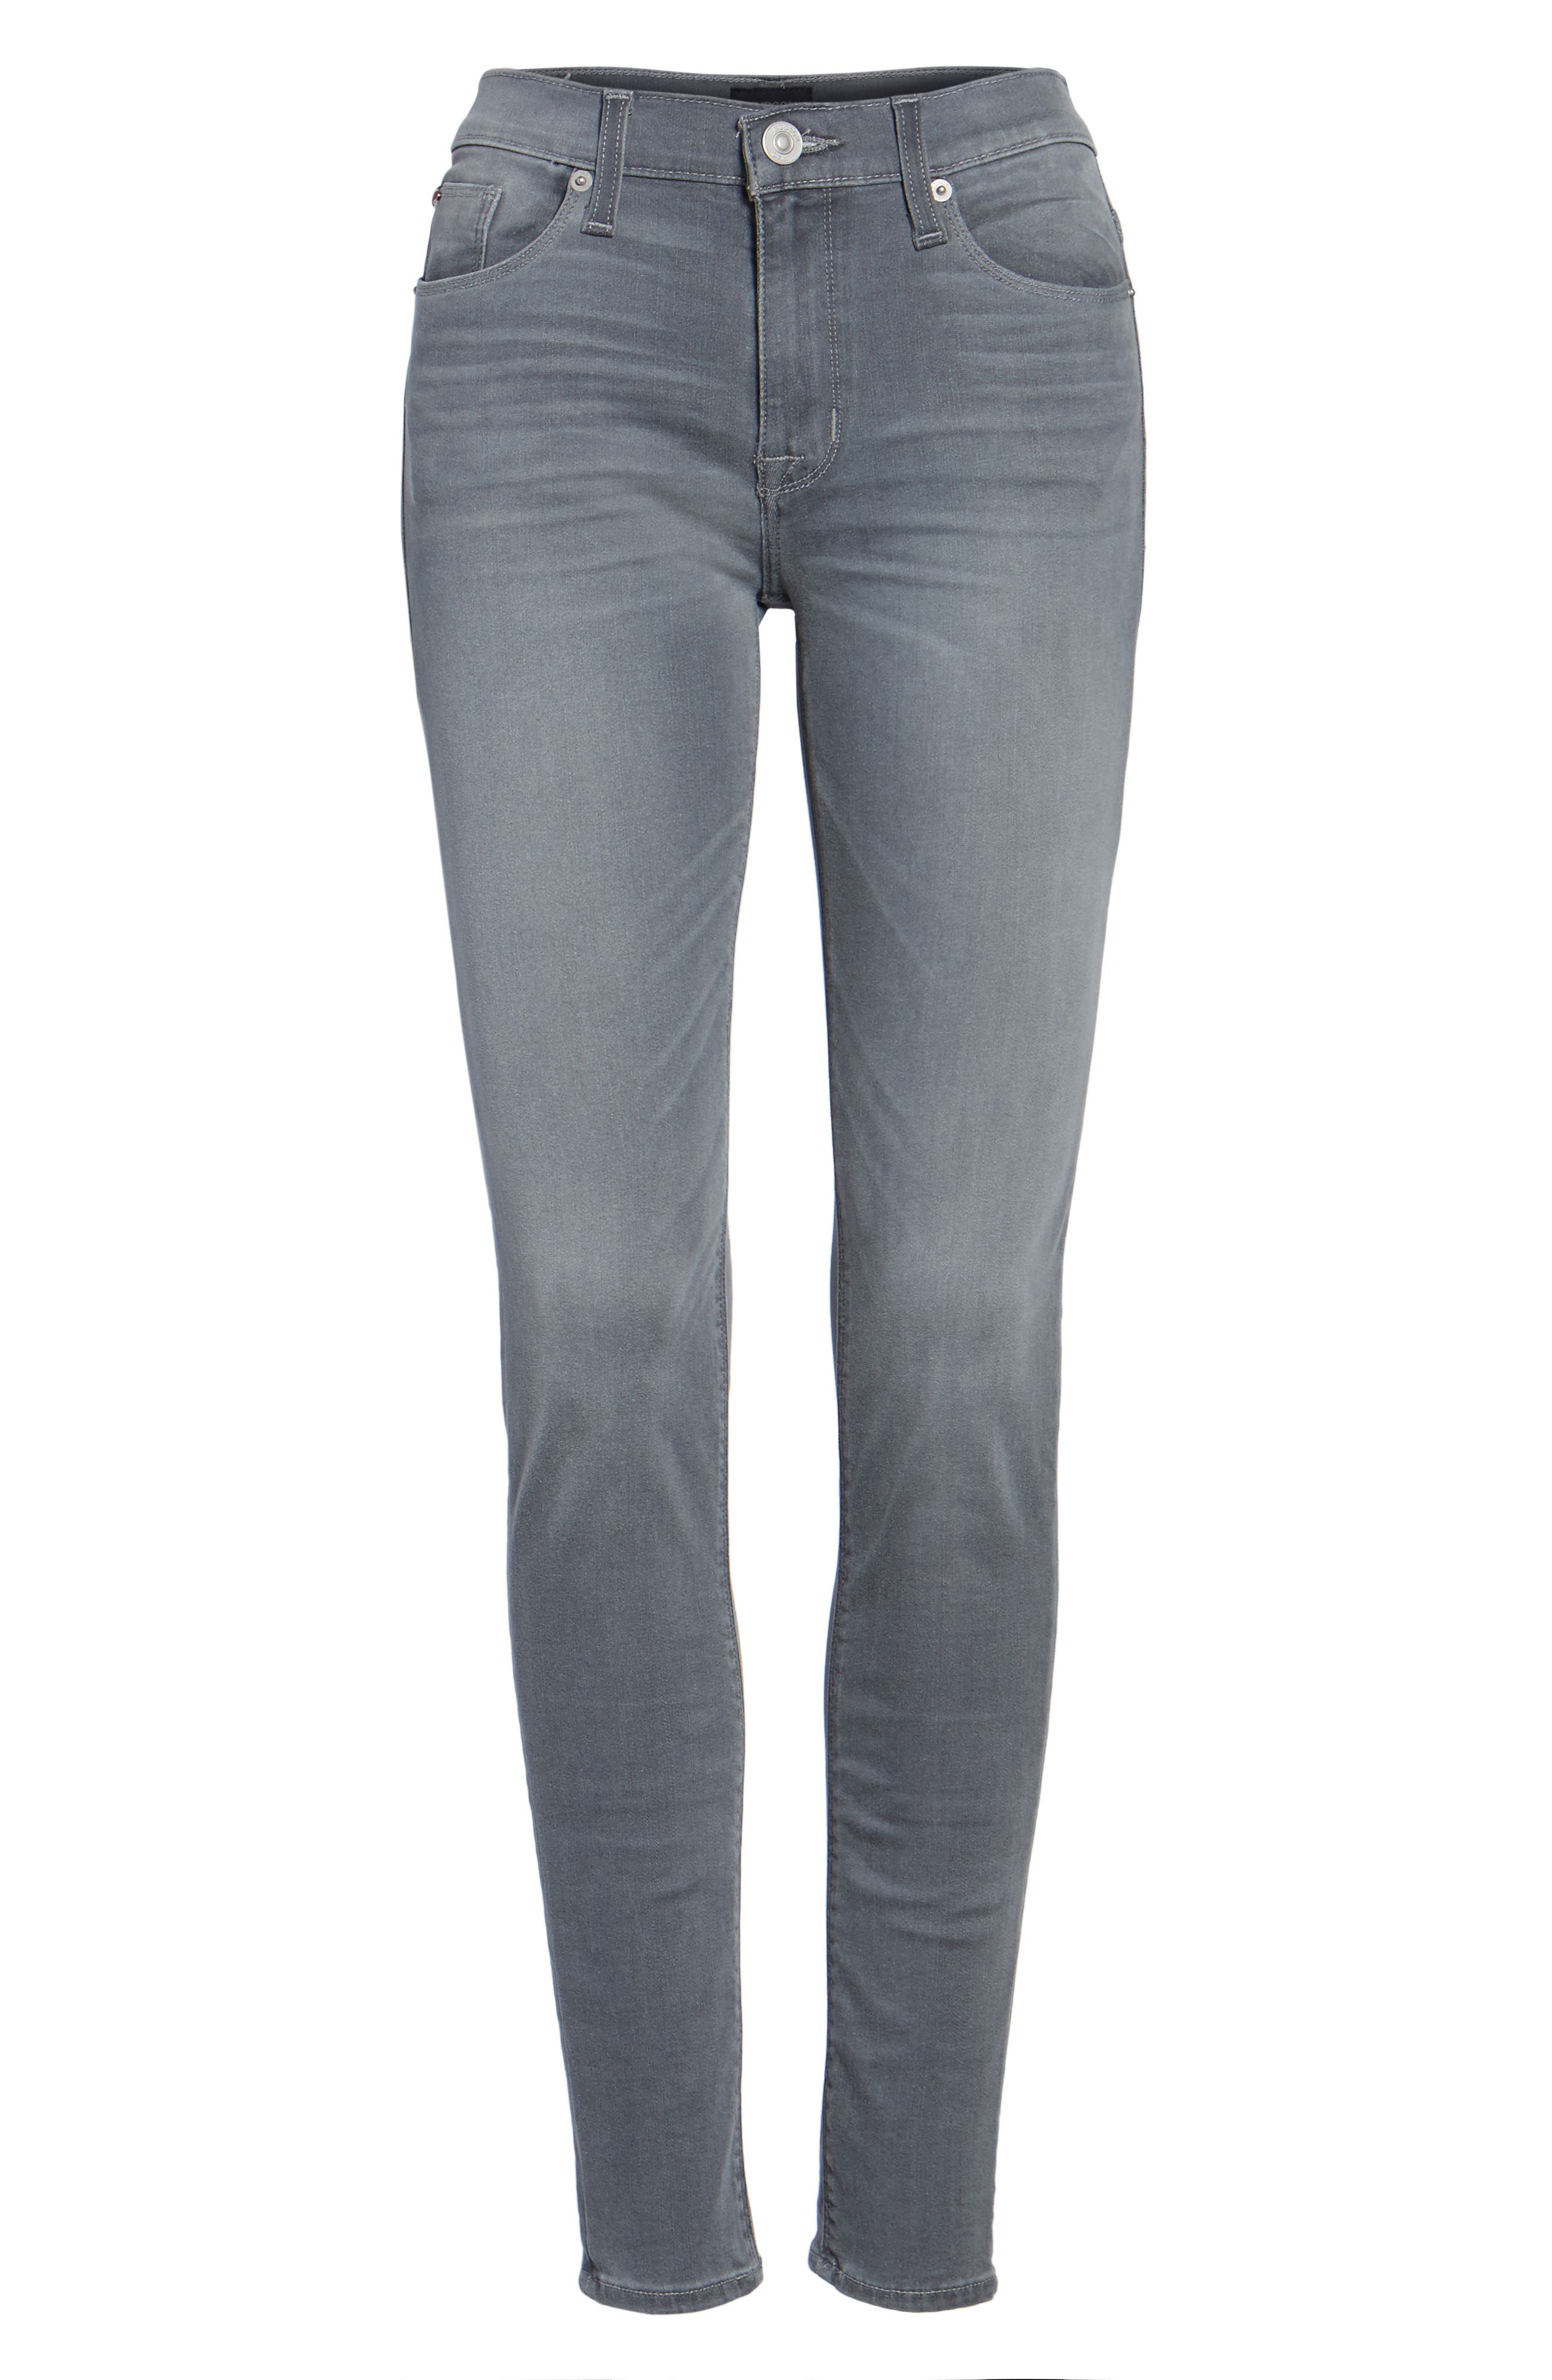 'Nico' Super Skinny Jeans,                             Alternate thumbnail 3, color,